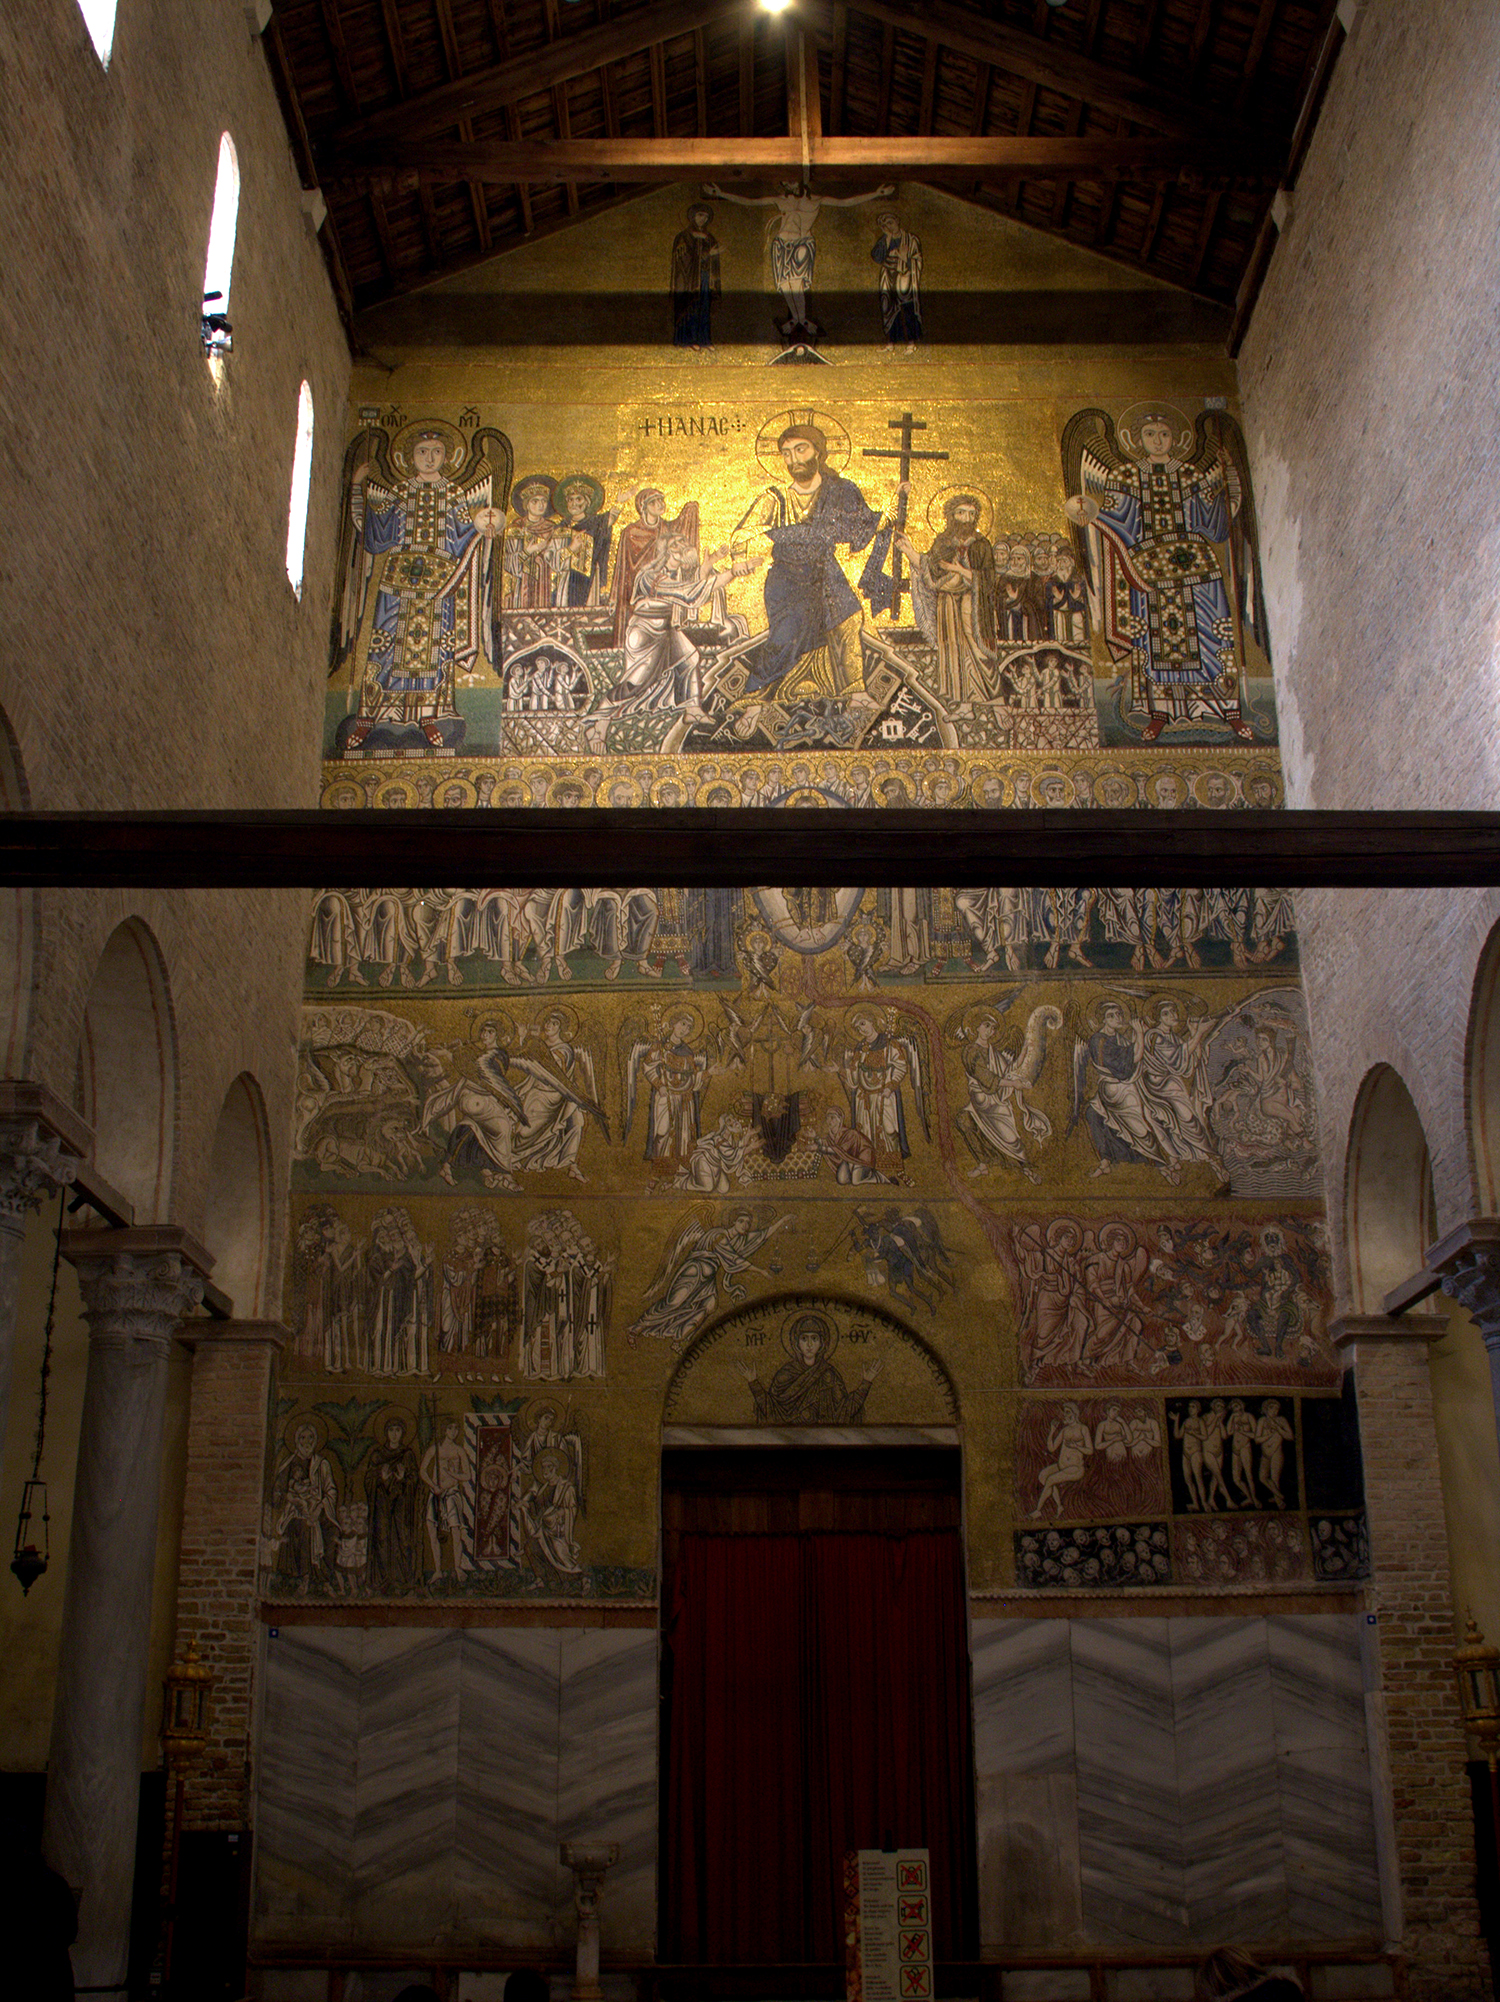 Figure 4:The Last Judgment is depicted in this eleventh-century mosaic on the west wall of the basilica church of Santa Maria Assunta at Torcello, Italy. Photo © User: Ismoon / Wikimedia Commons / CC-BY-SA-3.0.